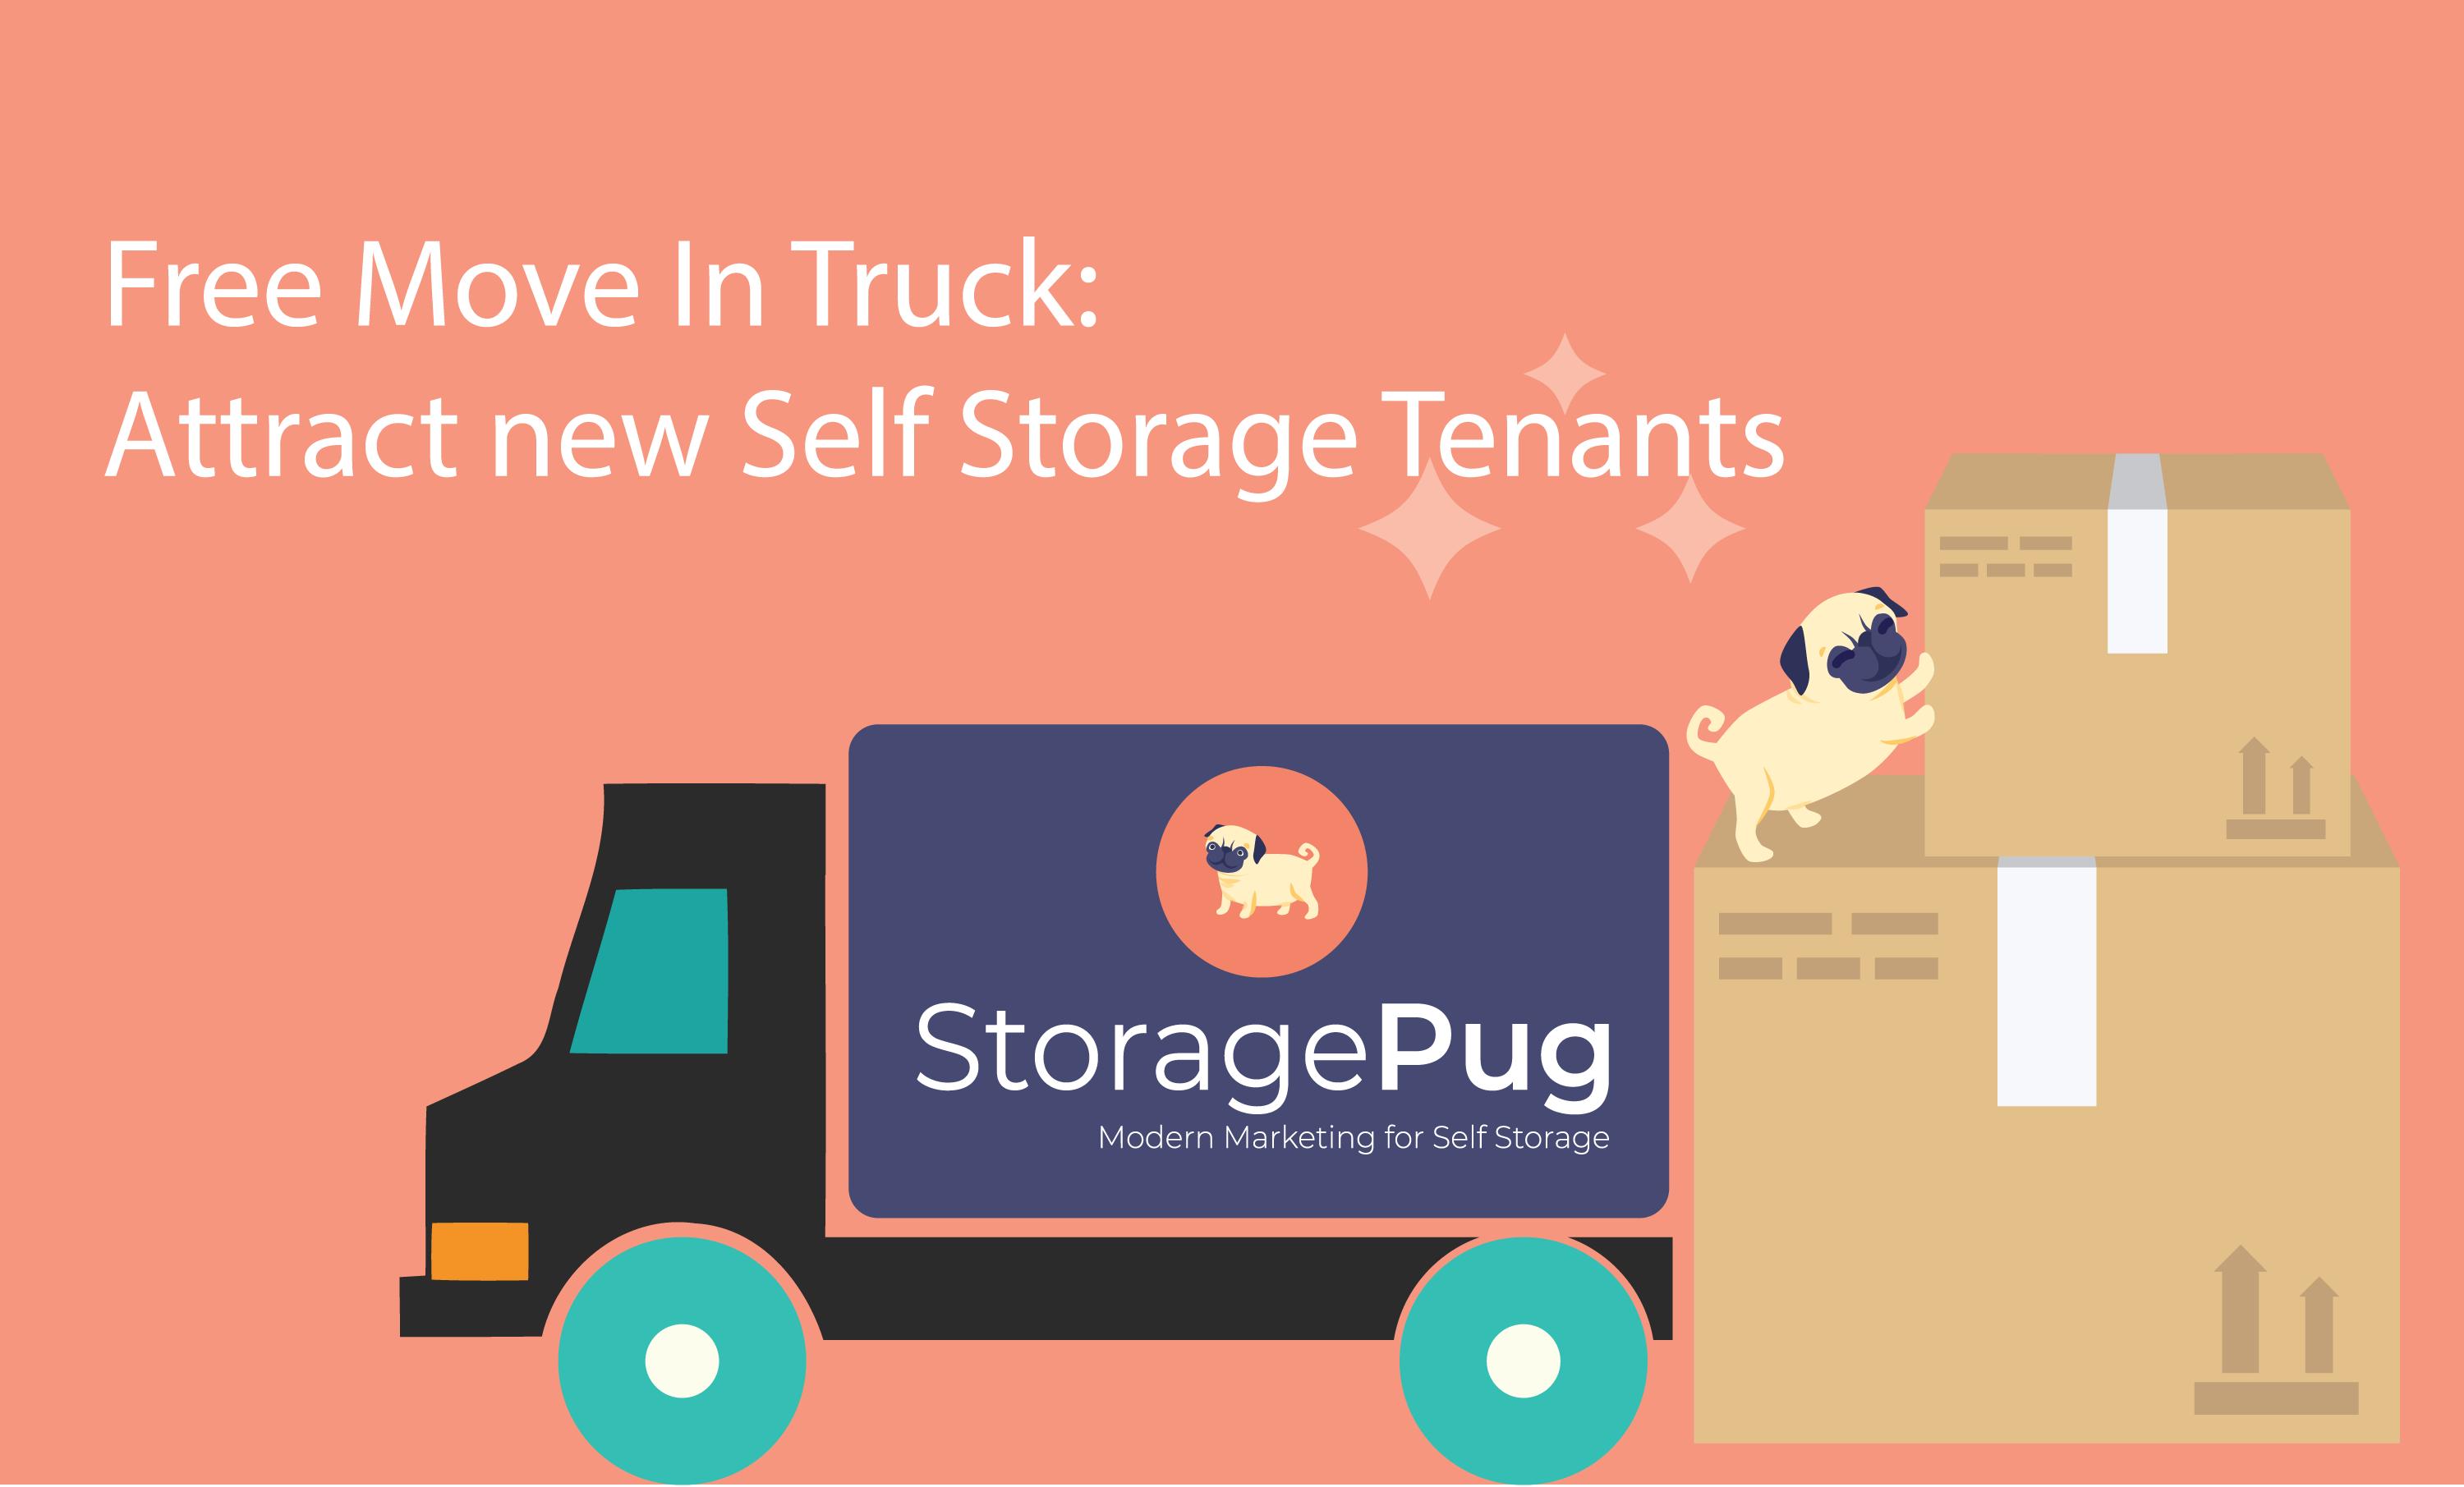 Your tenants are most likely going to need a truck when they rent a storage unit. Give you facility an edge over your competition.